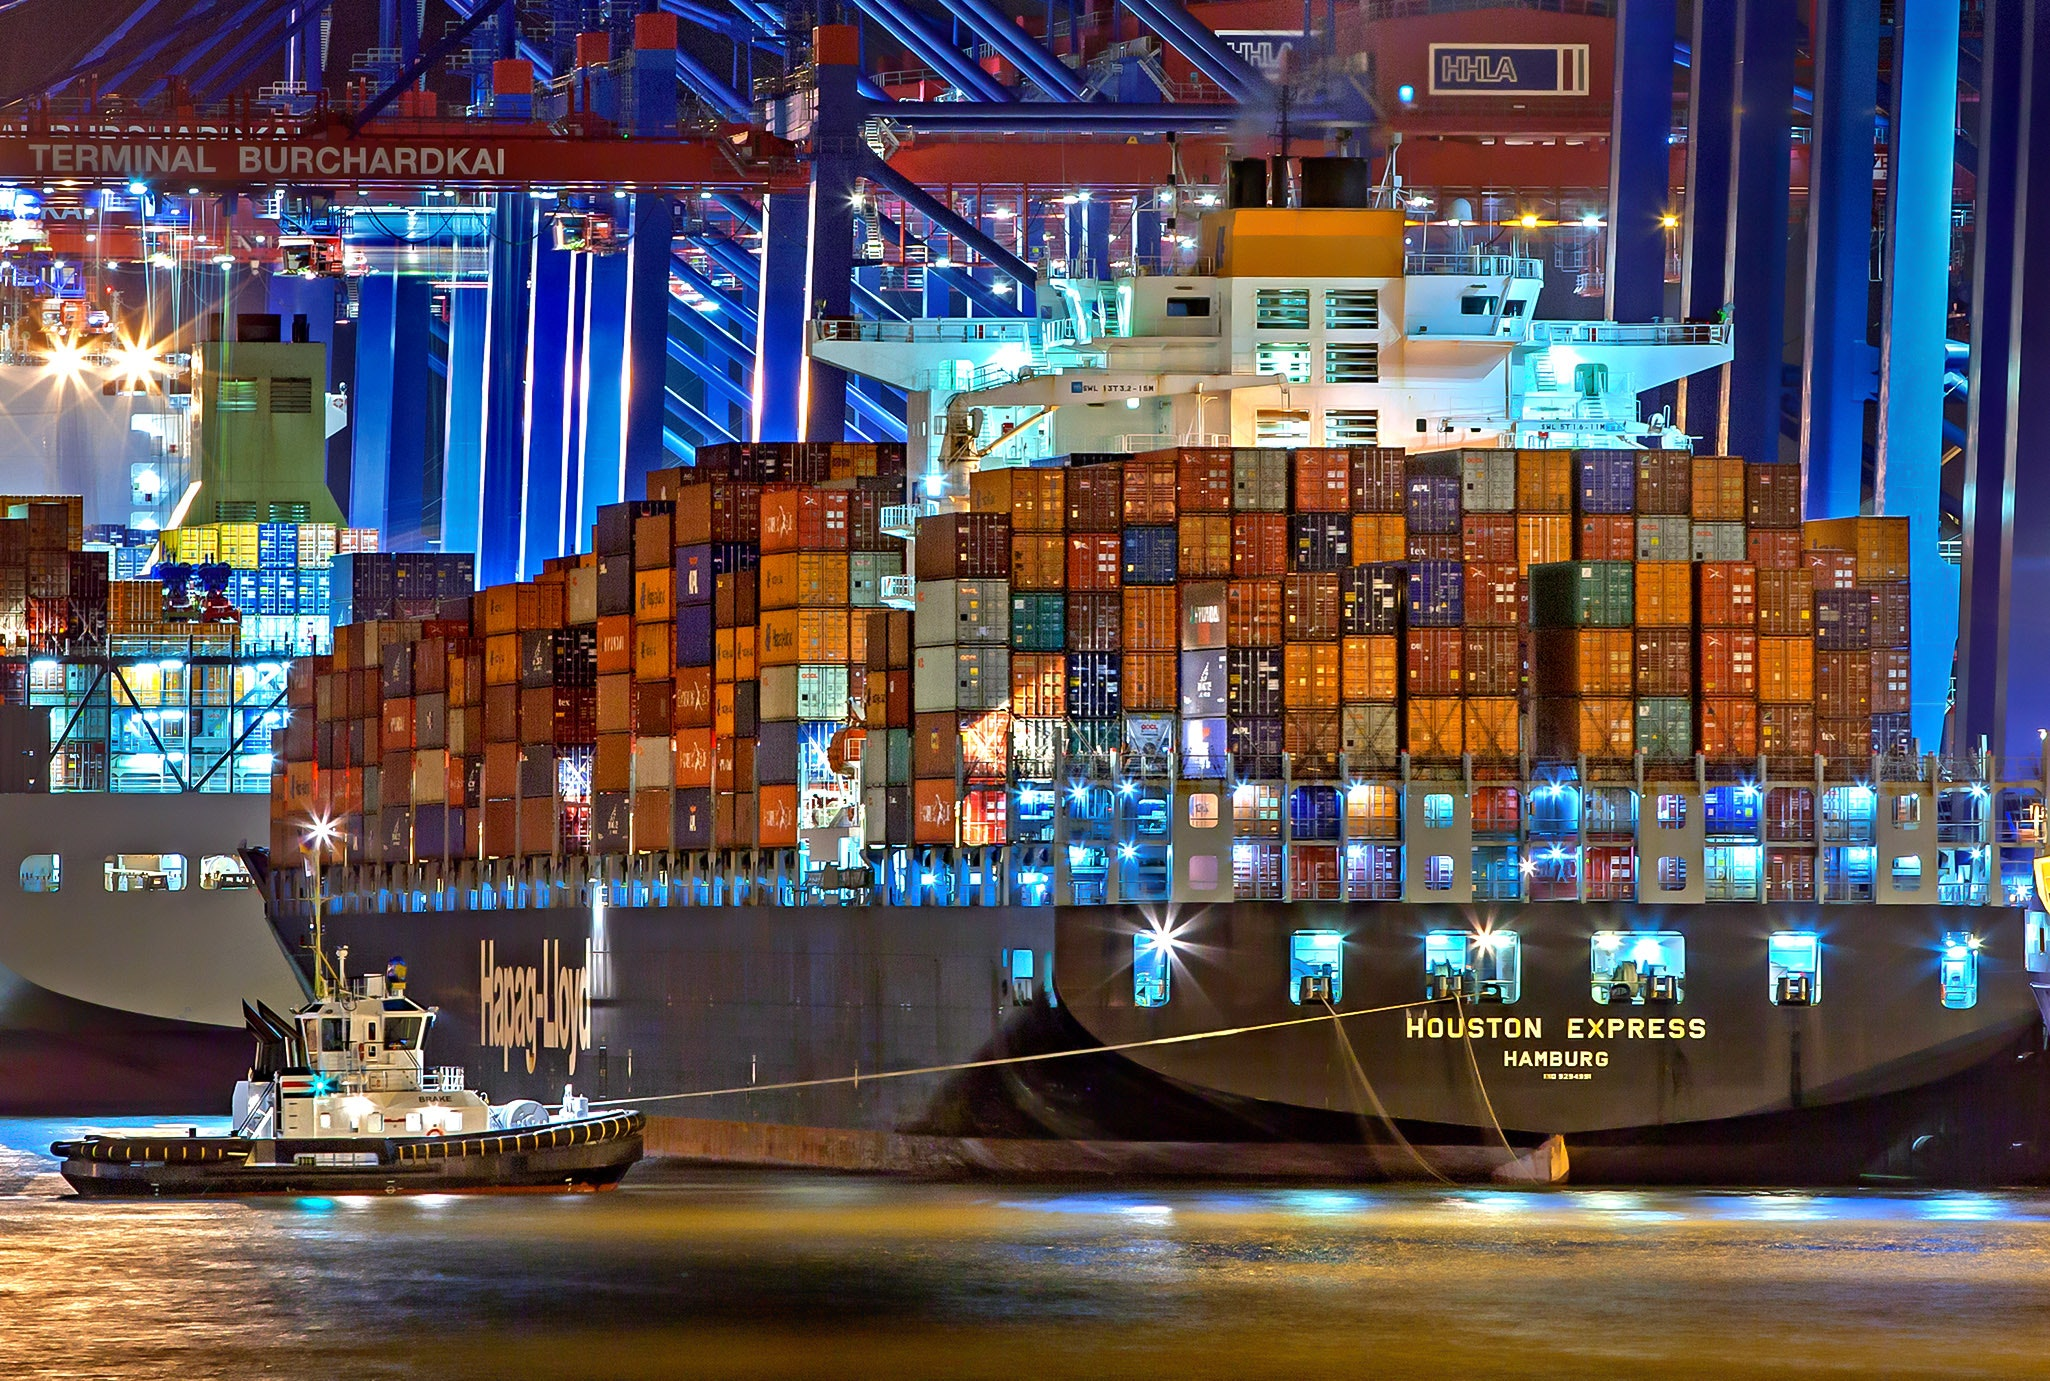 A cargo ship in the middle of the sea at night